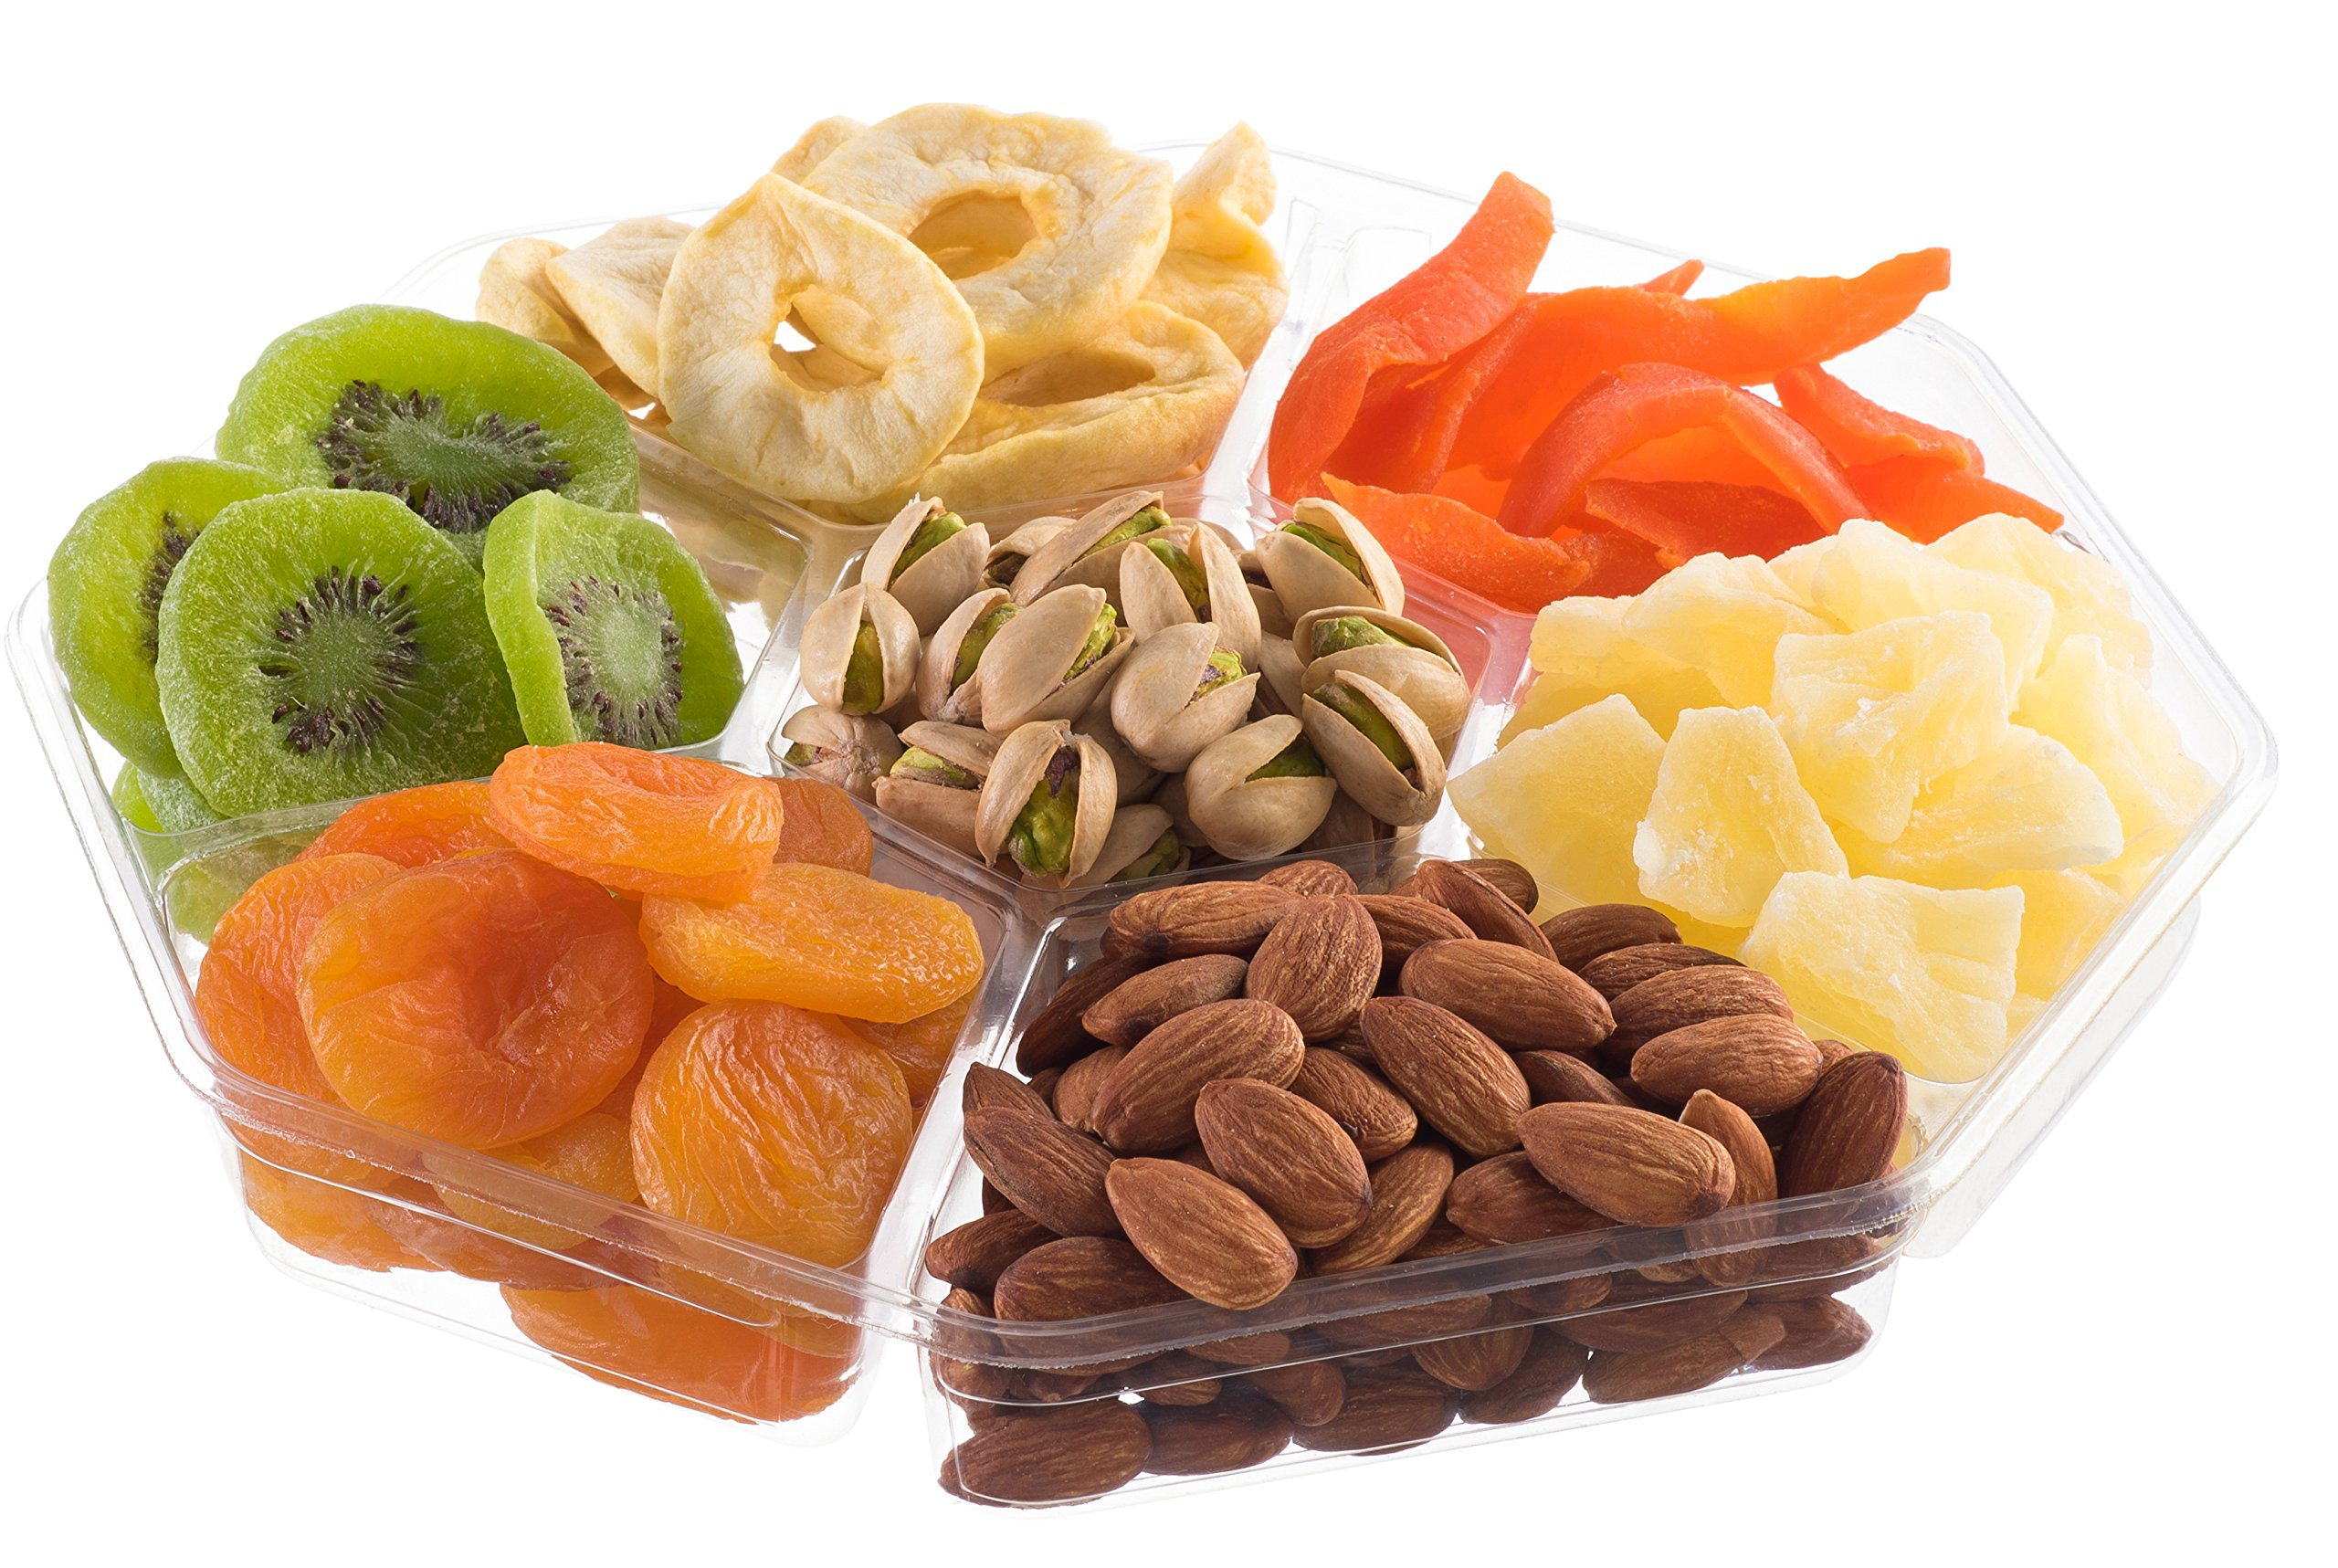 Nut Cravings Large Dried Fruit Prime Gift Basket | Variety Of 7-Section Gourmet Assorted Dried Fruit tray | Holiday Gift Assortment For Birthday - Sympathy - Get Well - Corporate Food Gift Box